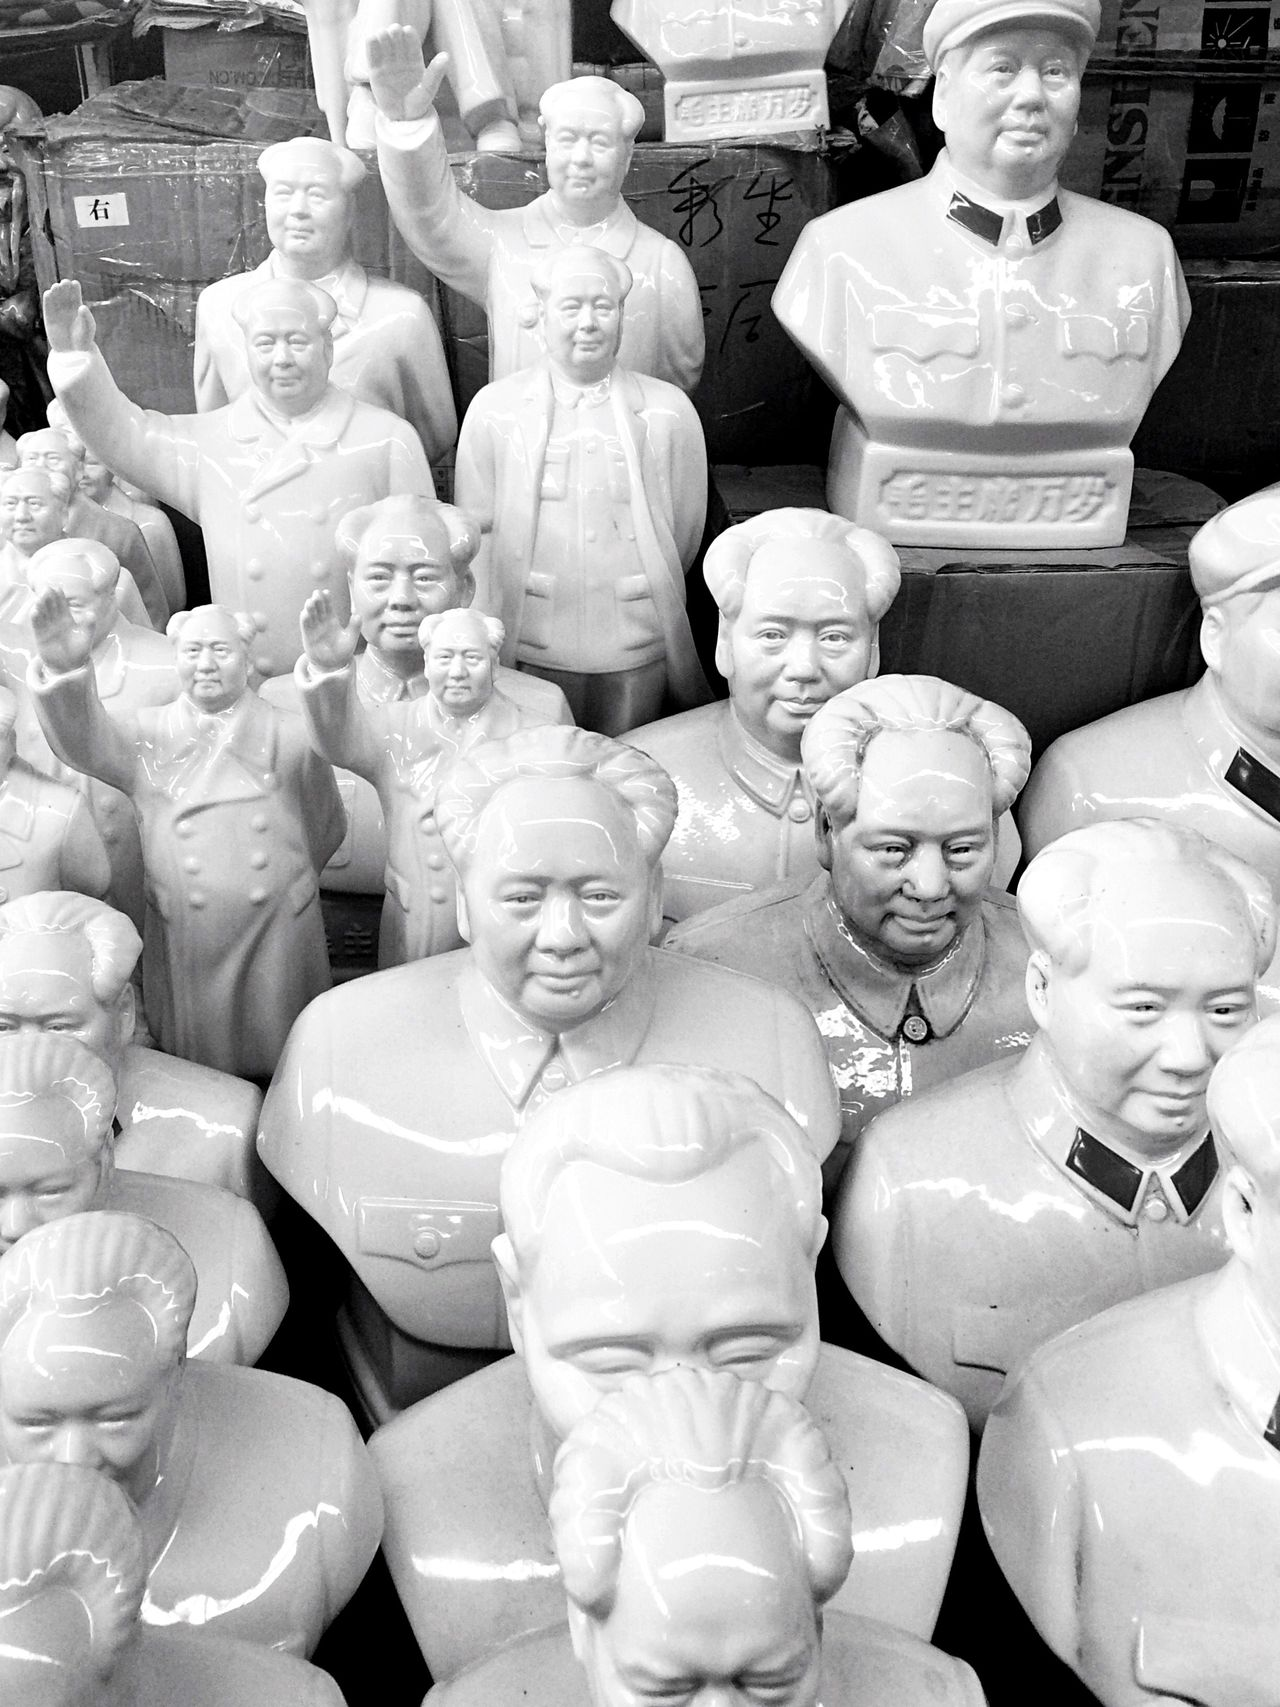 Human Representation Men History Statue Large Group Of People China Streets Selling On The Street Statues Mao Zedong Mao China Chinese Chinese Culture Chinese Art And Craft Chinese Art Porcelain  Art Fleamarket Market Marketplace Market Stall Market Place